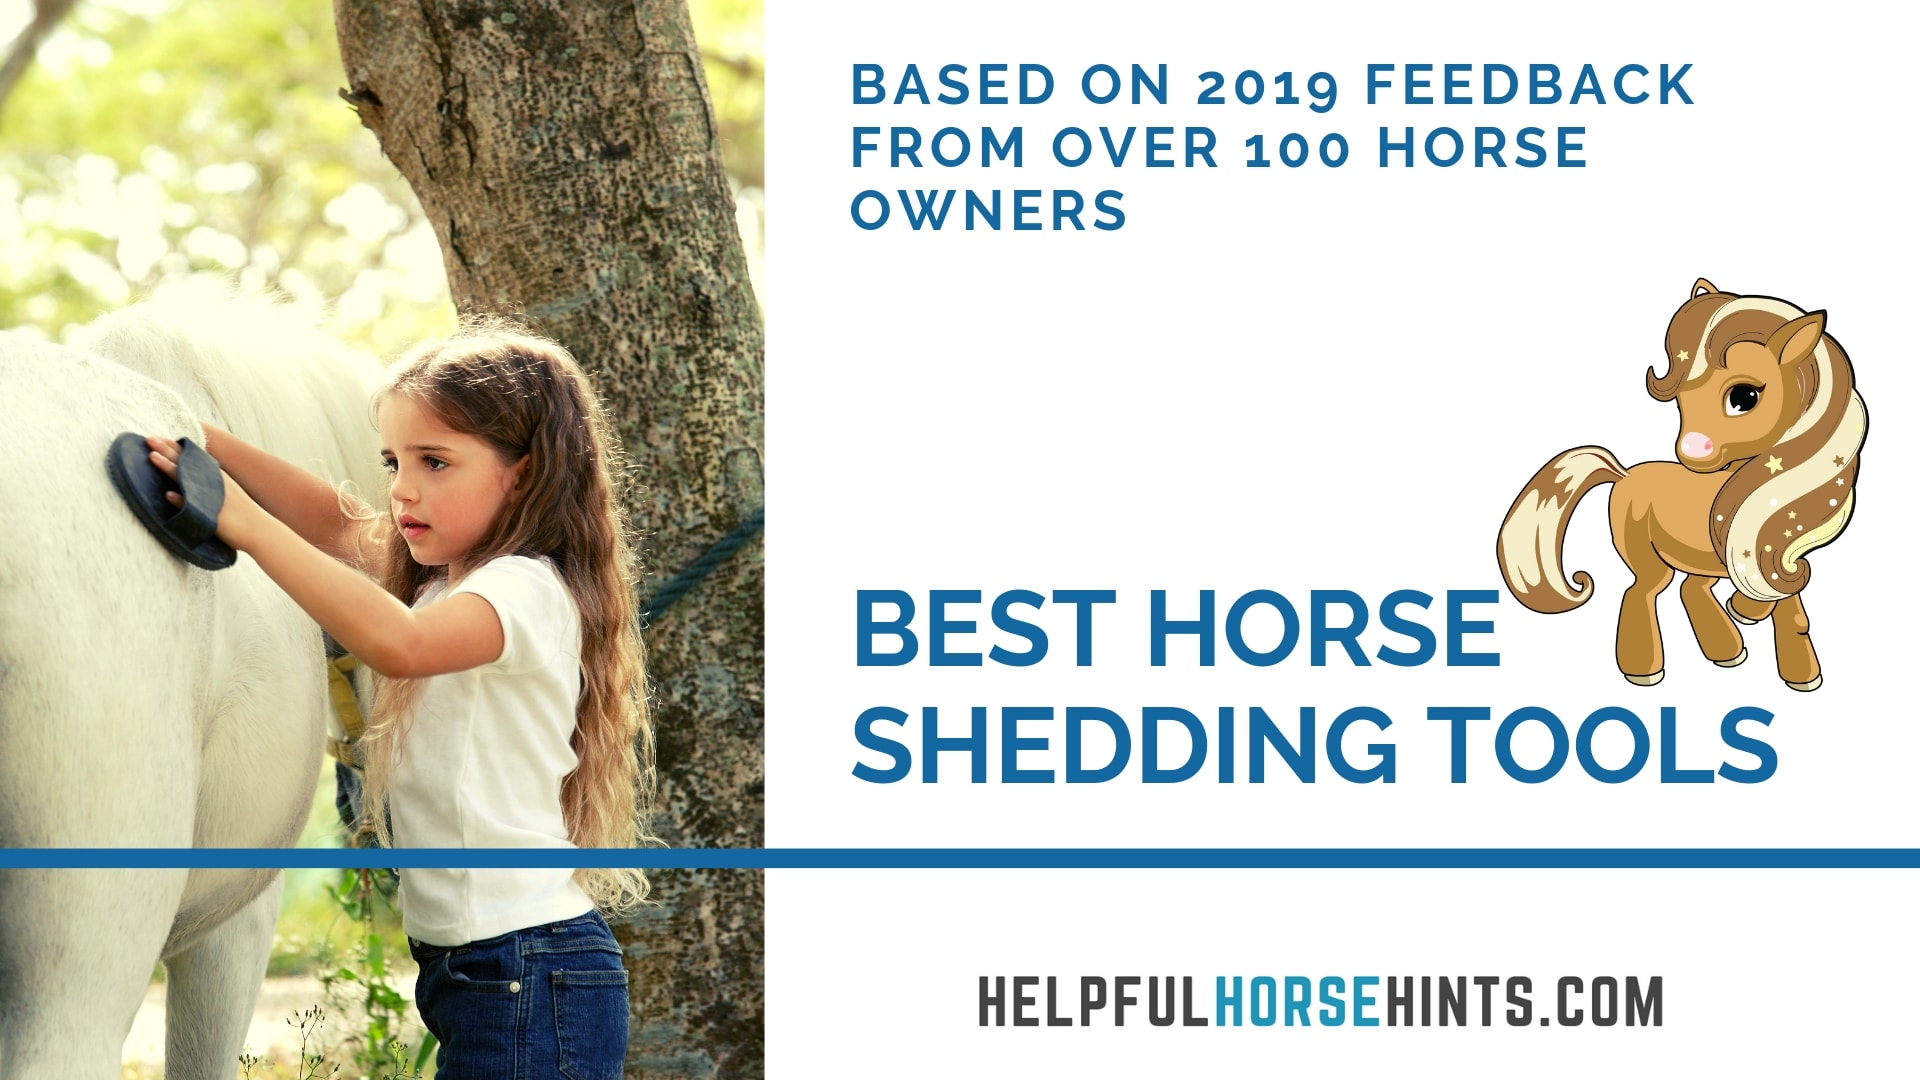 THE best horse shedding tools